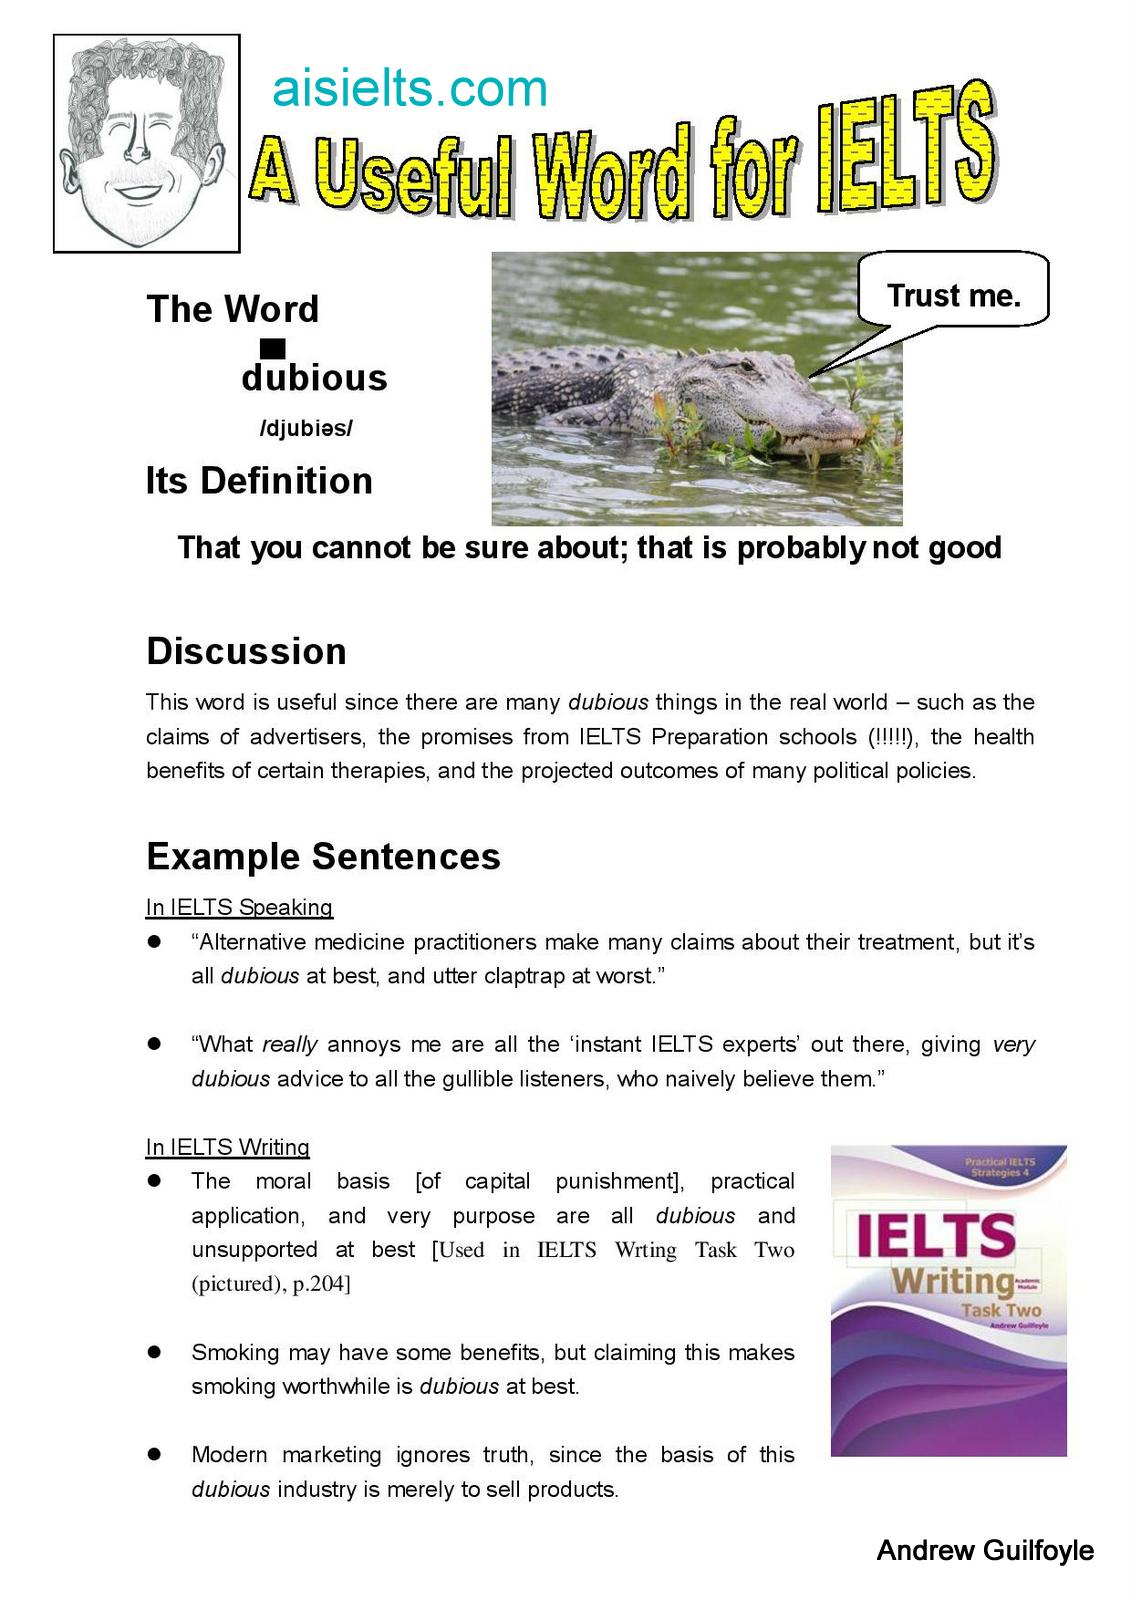 selected advanced vocabulary for ielts writing The topics in this book are general topics selected to help develop your academic vocabulary you should also read widely and become familiar with other topics and issues it is a good idea to read about topics that are less familiar to you, but still relevant for a general english test, like the ielts.